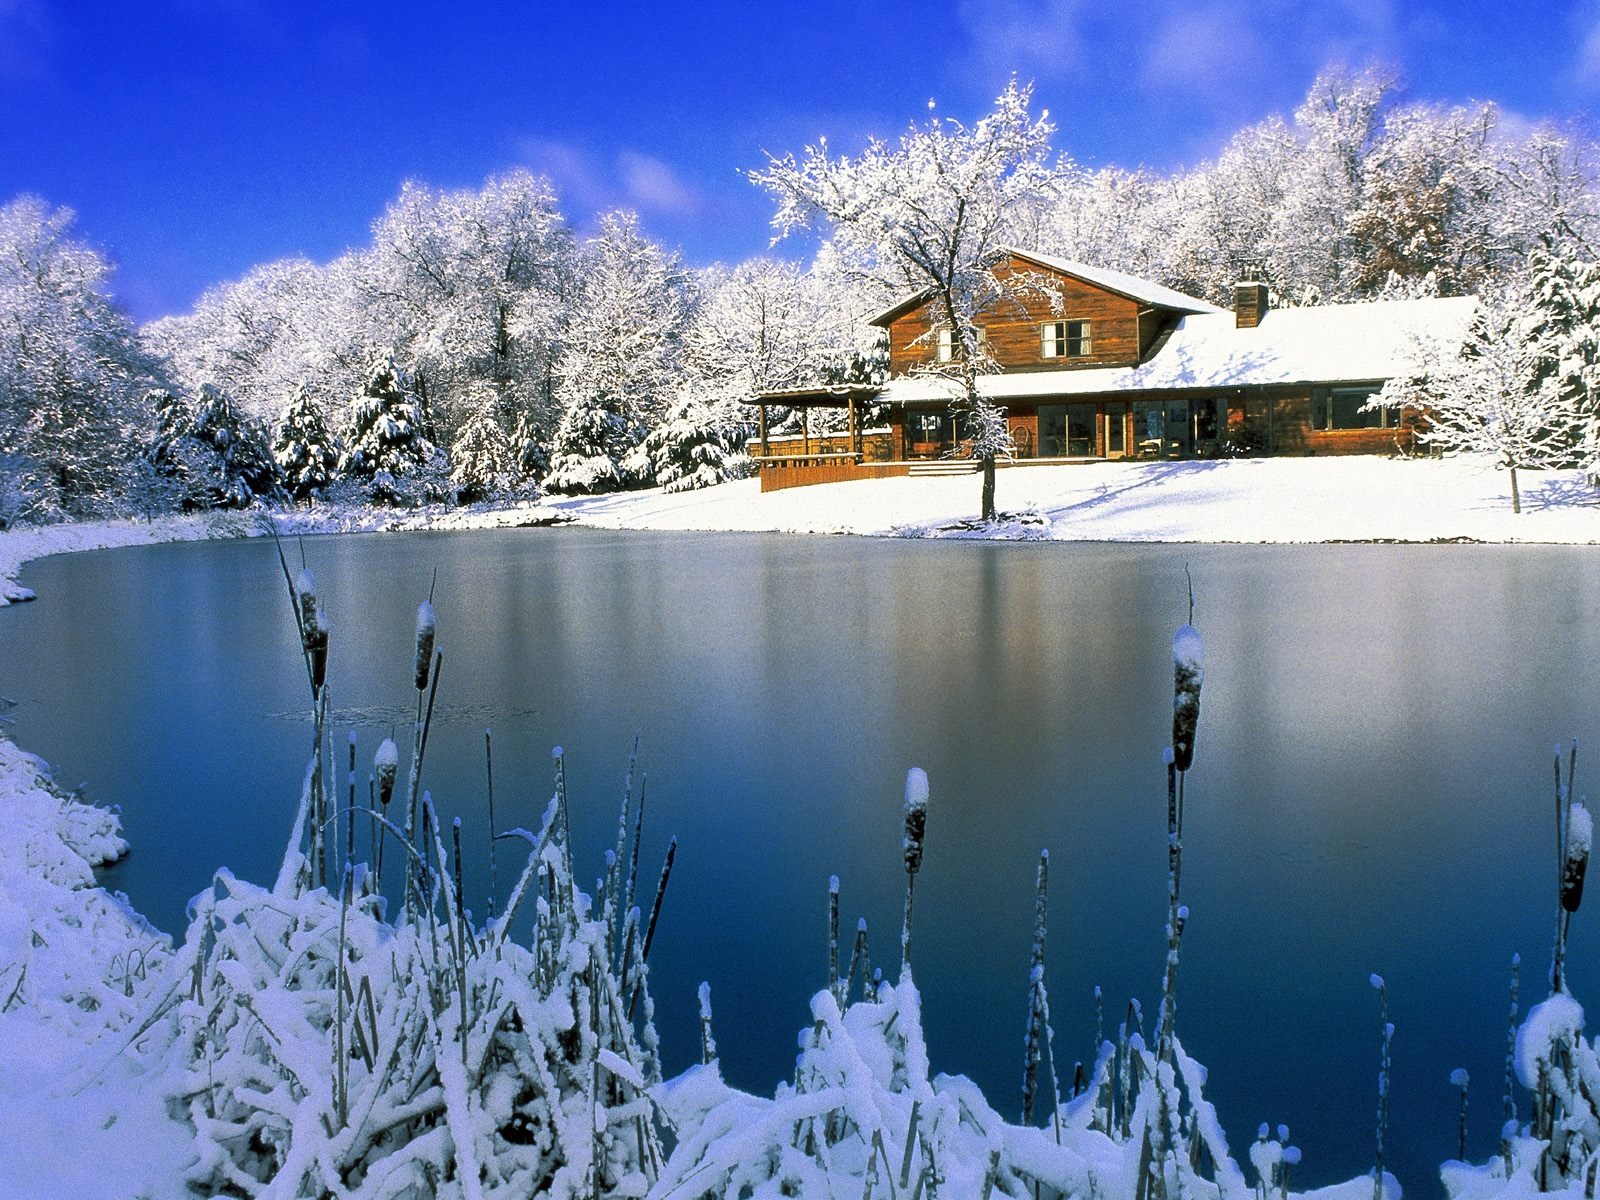 Country Winter Wallpaper